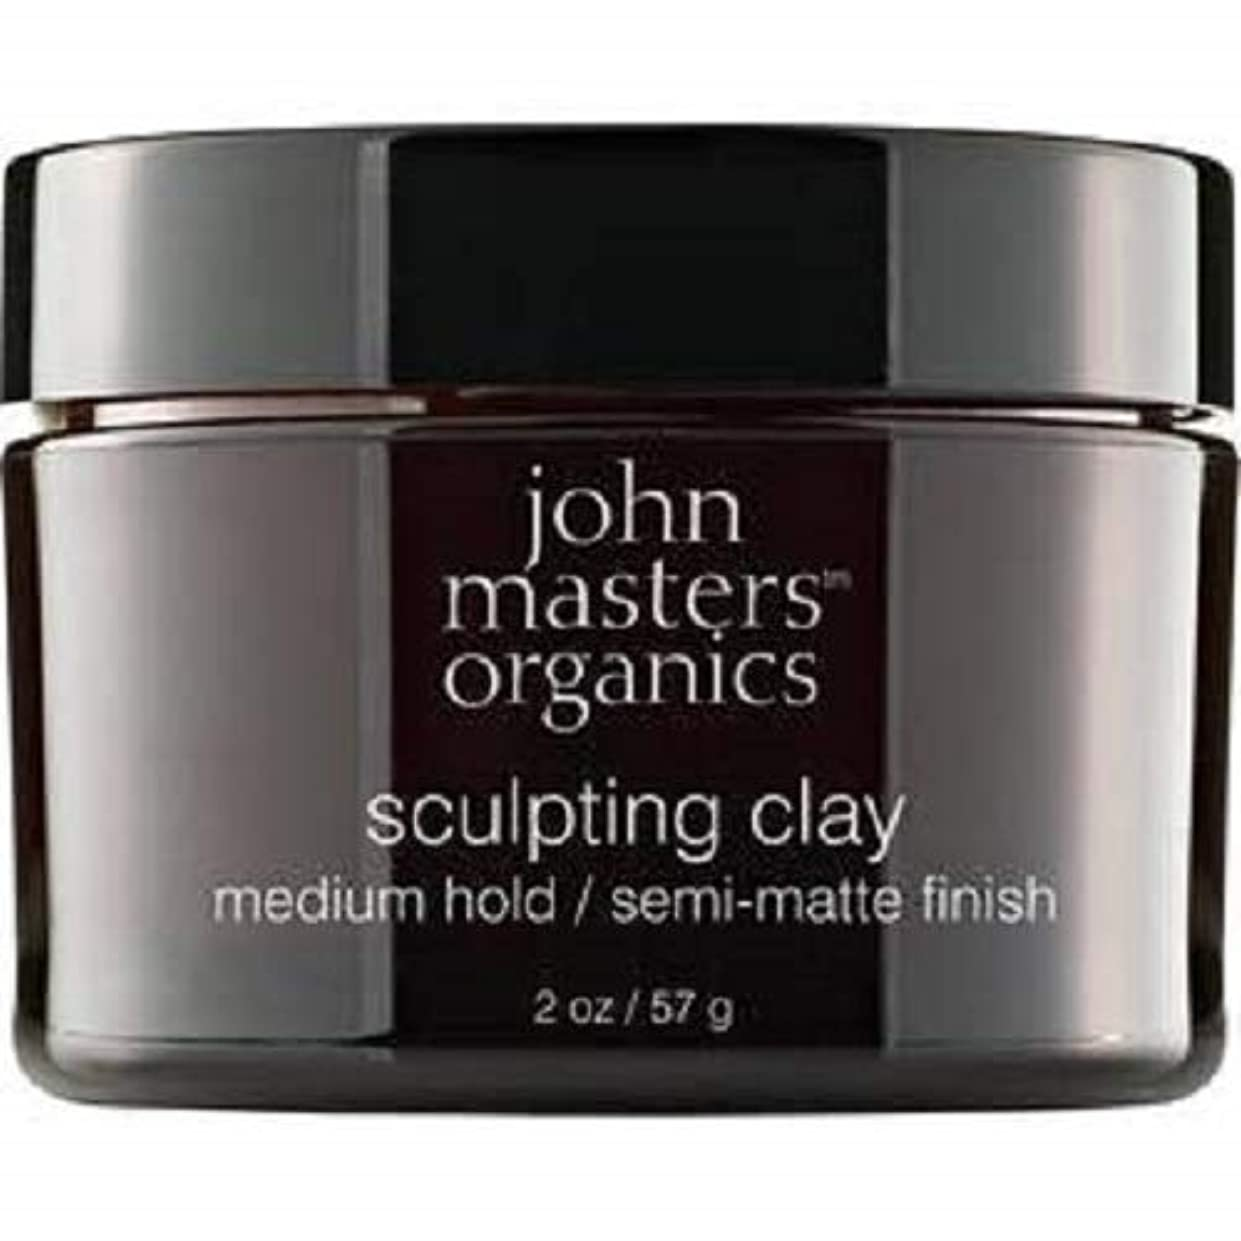 ジャーナリスト主同じJohn Masters Organics Sculpting Clay medium hold / semi-matt finish 2 OZ,57 g